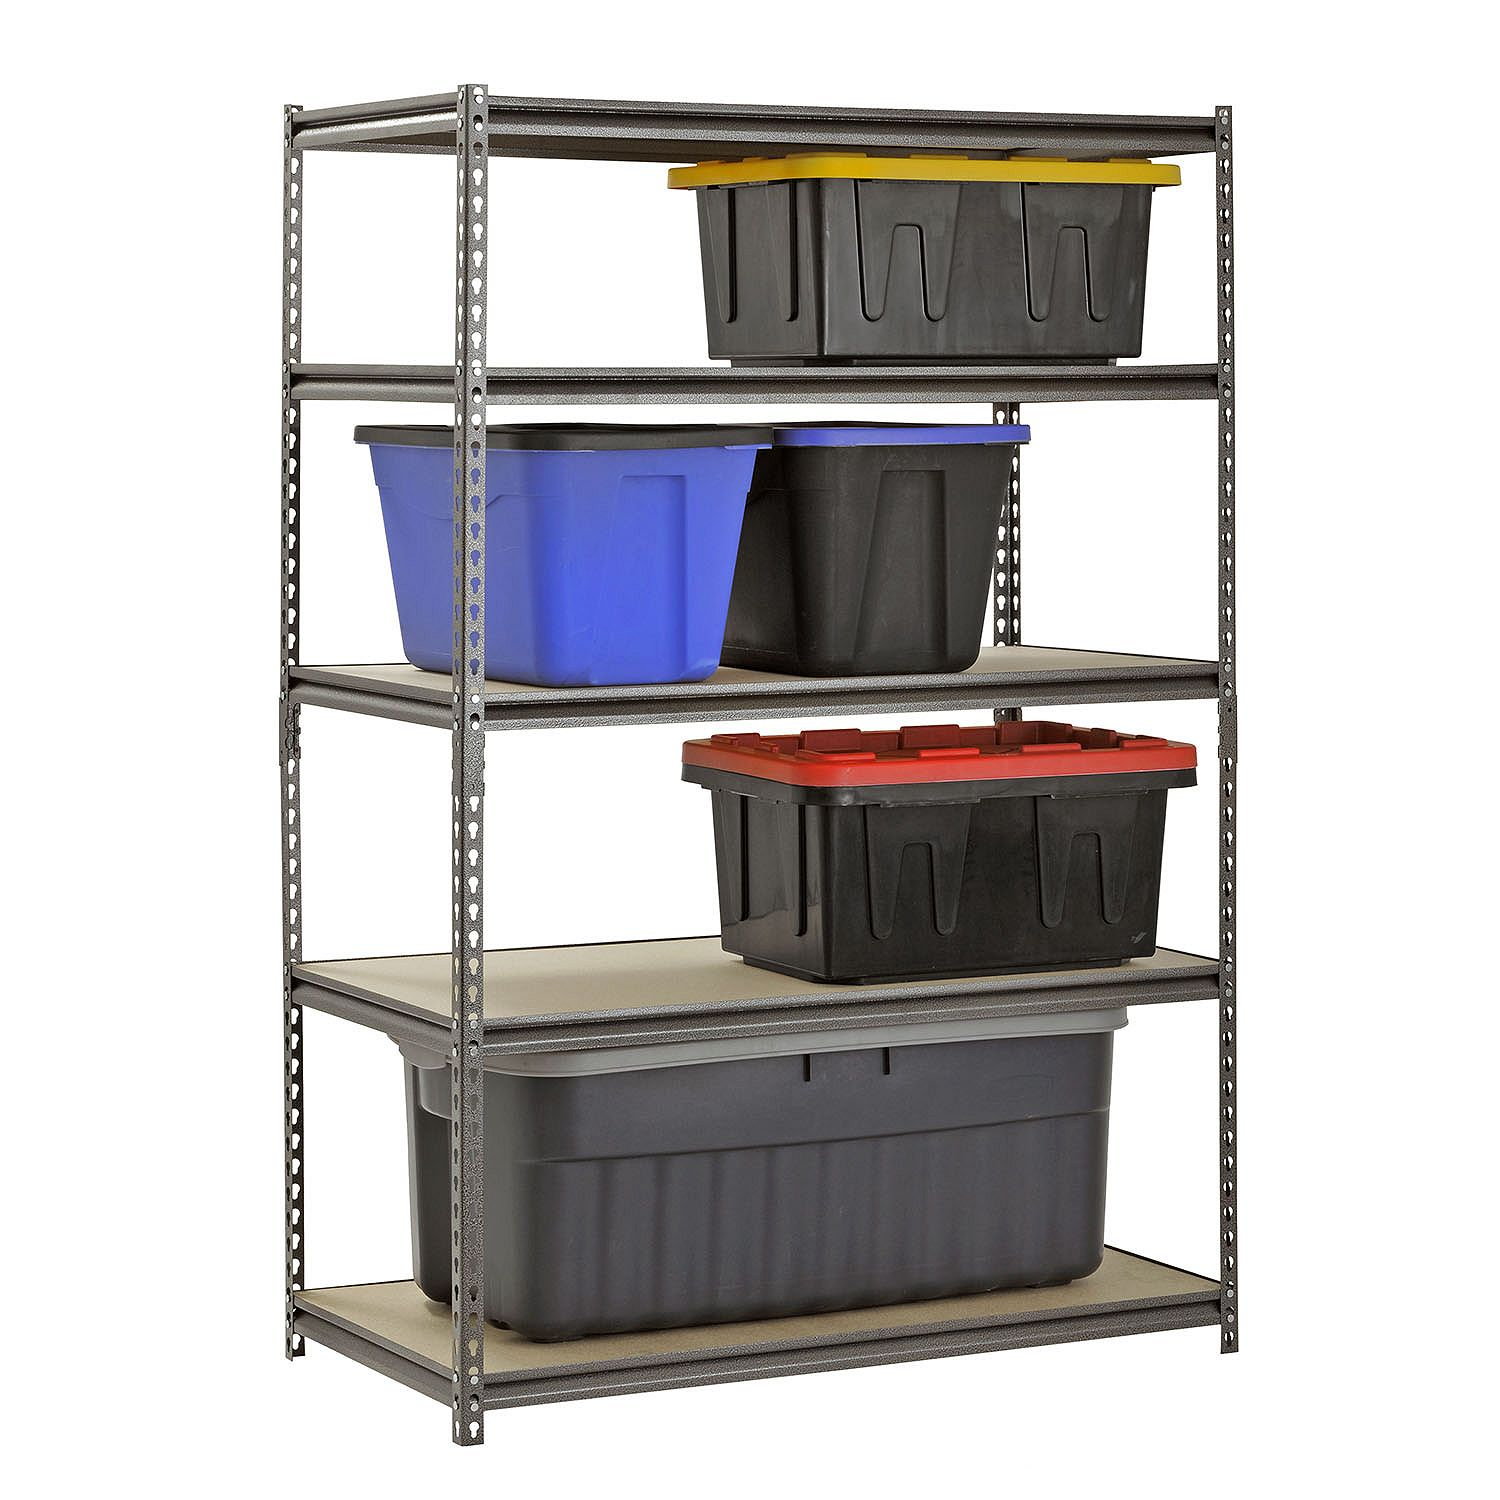 Club Sams Storage Racks